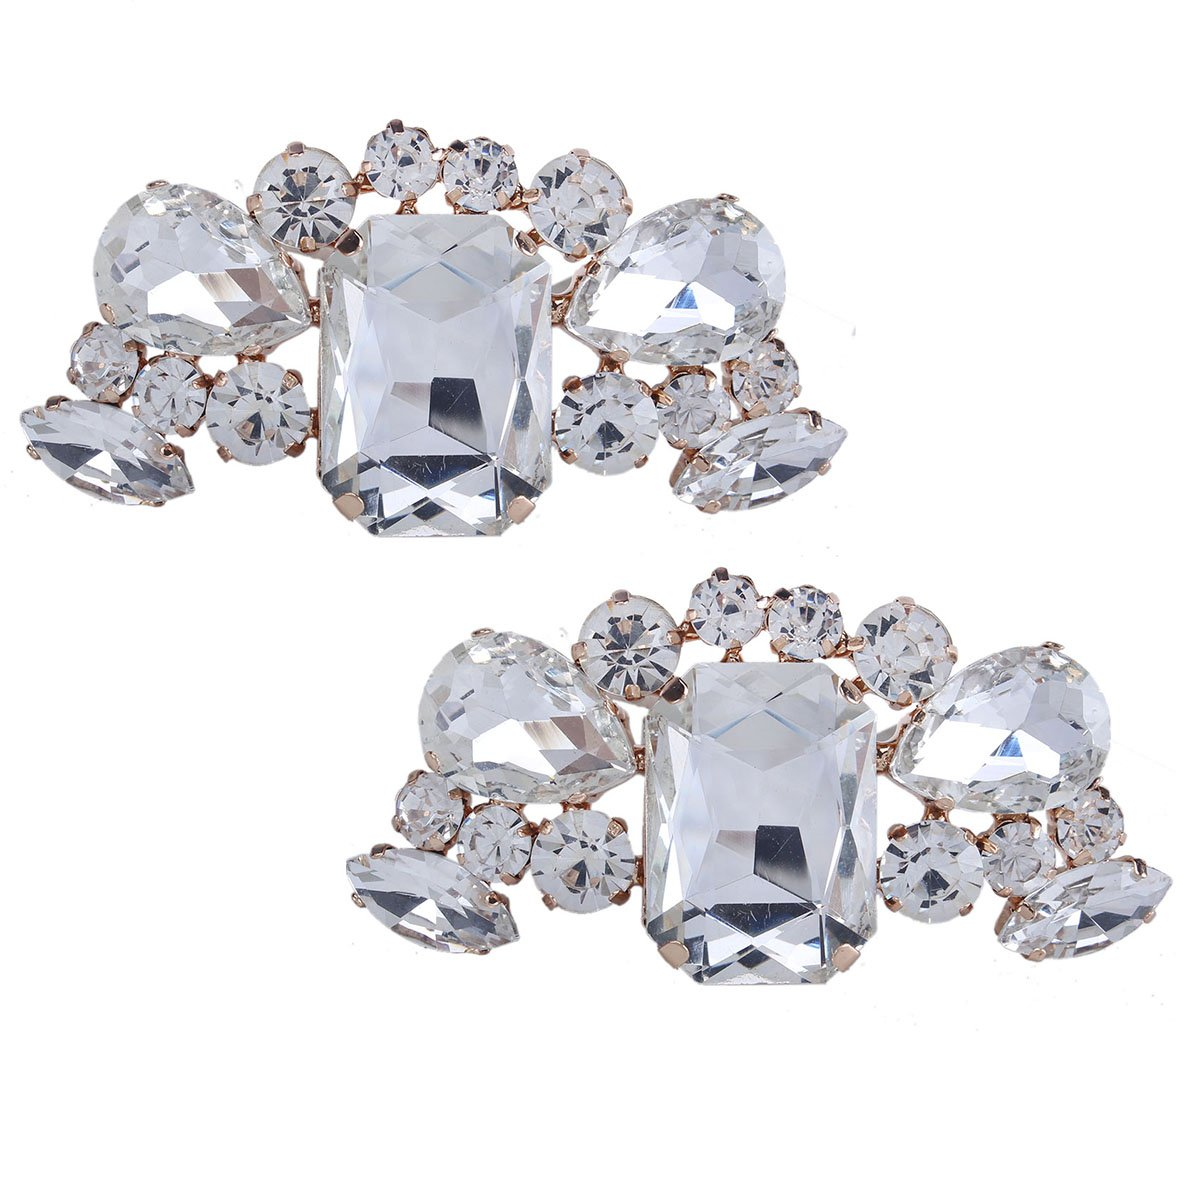 Santfe Fashion Crystal Rhinestone Flower Shoe Buckle Shoe Clips for Bridal Wedding Party Shoe Decoration (silver-d)